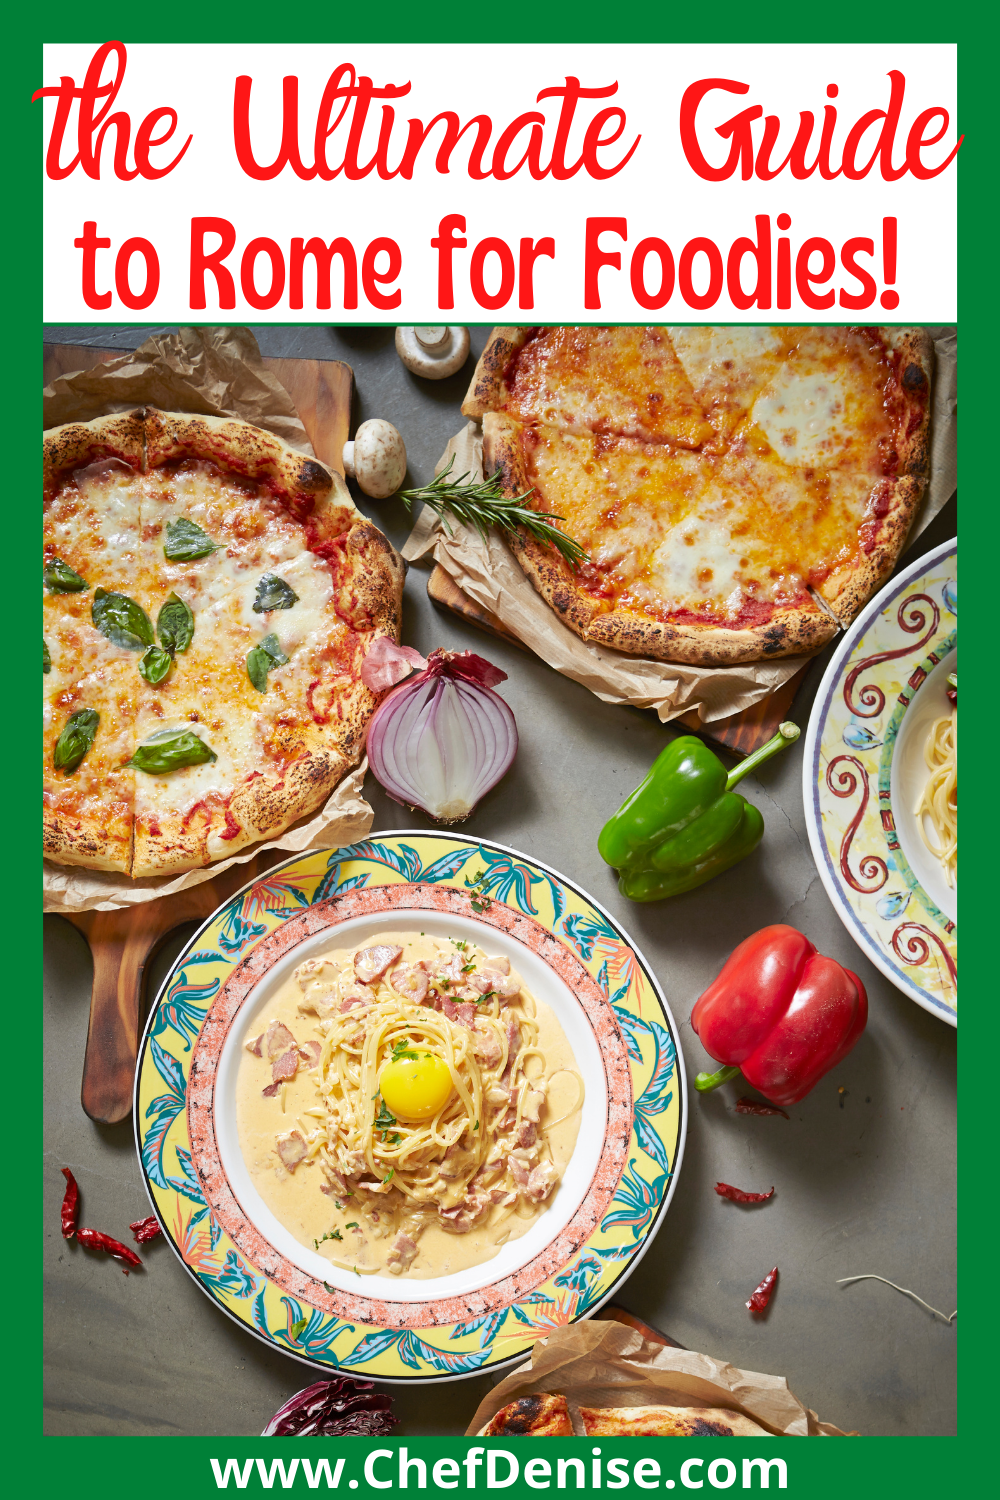 Pin to the Ultimate Guide to Rome for Foodies!